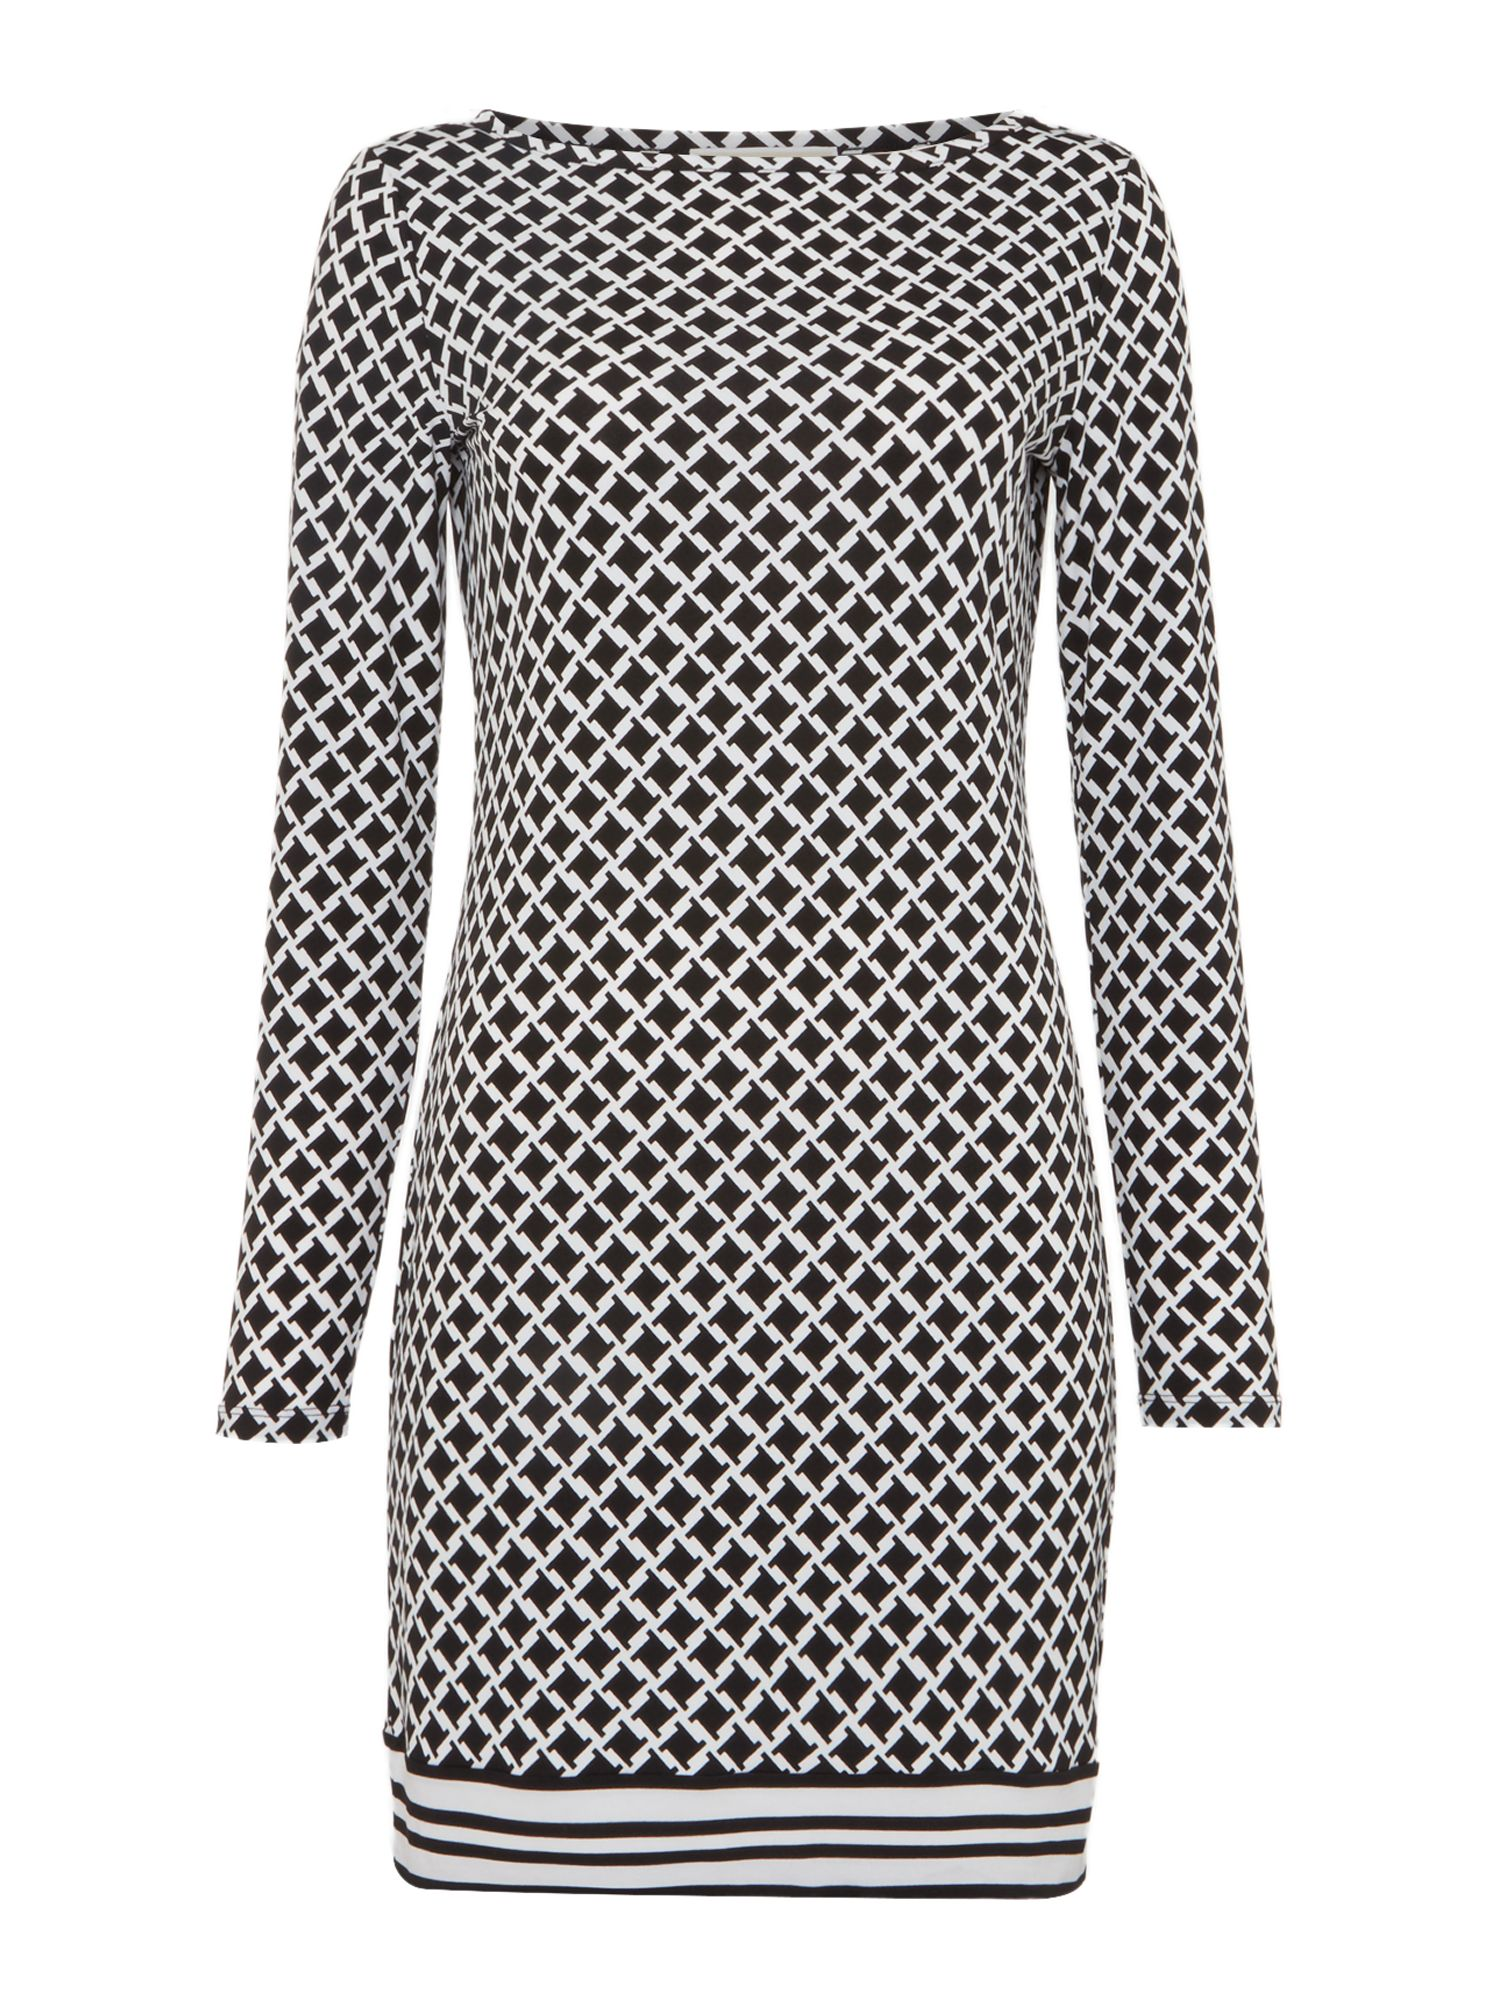 Michael Kors Long Sleeved Border Shift Dress, Black